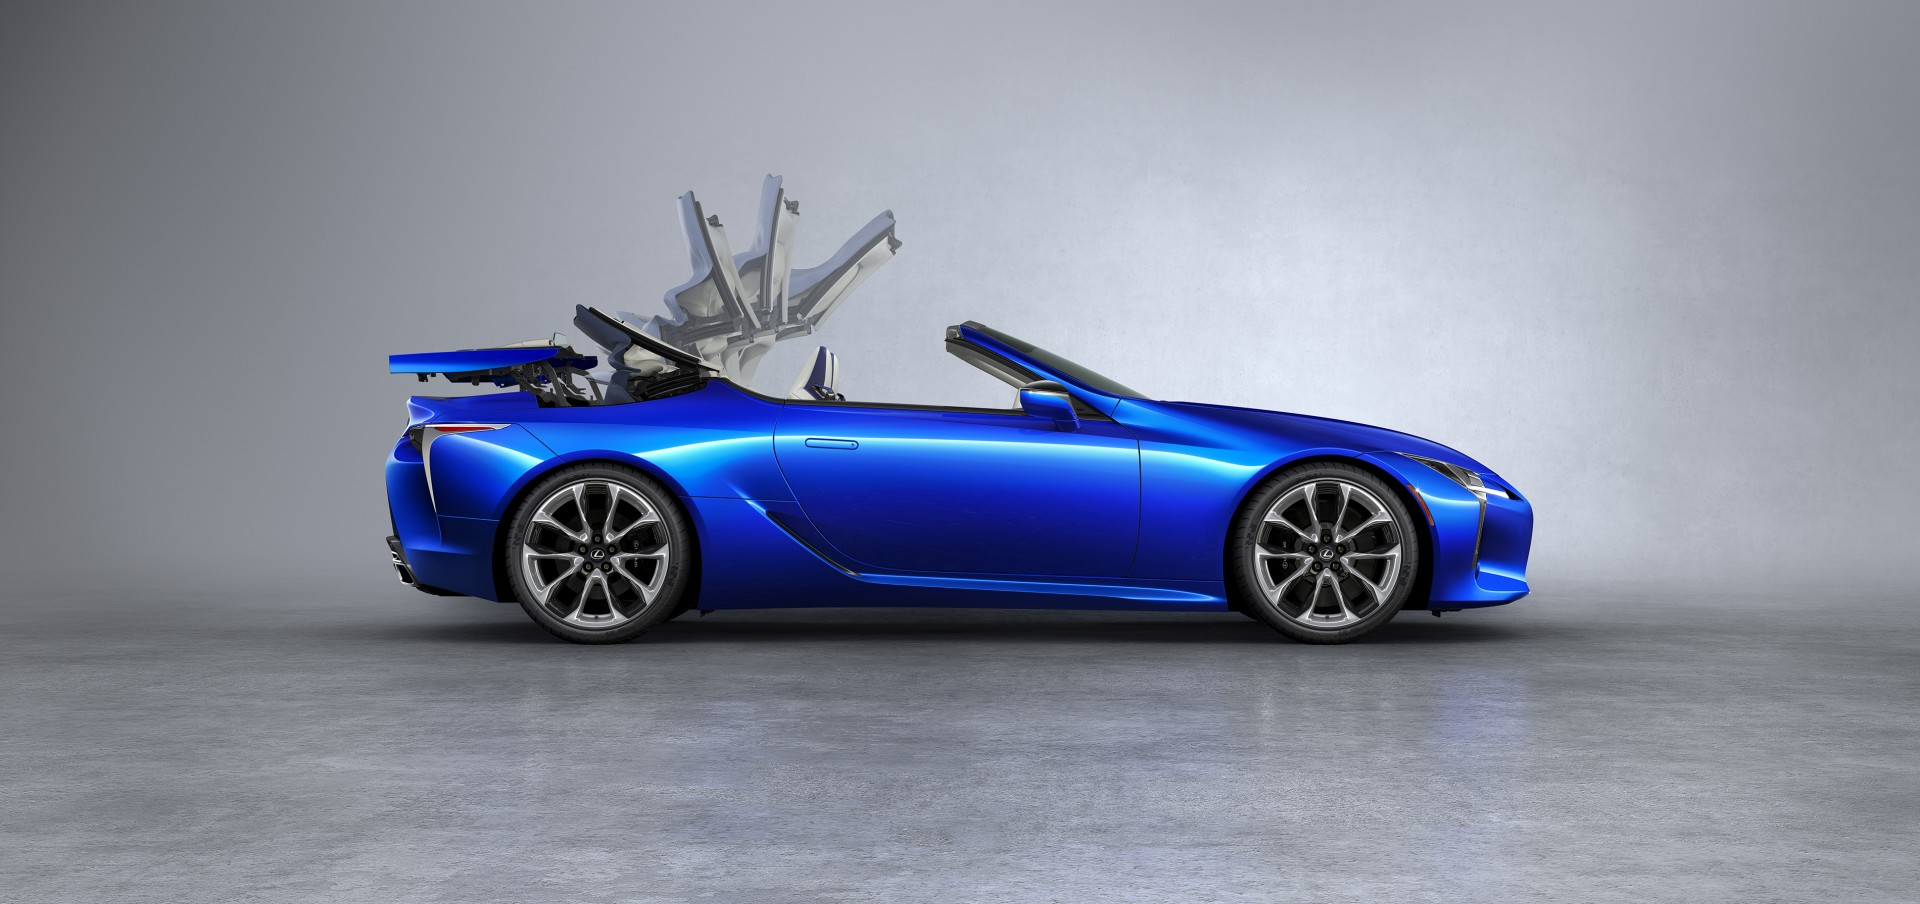 The Lexus Lc Convertible Producing The Perfect Soft Top